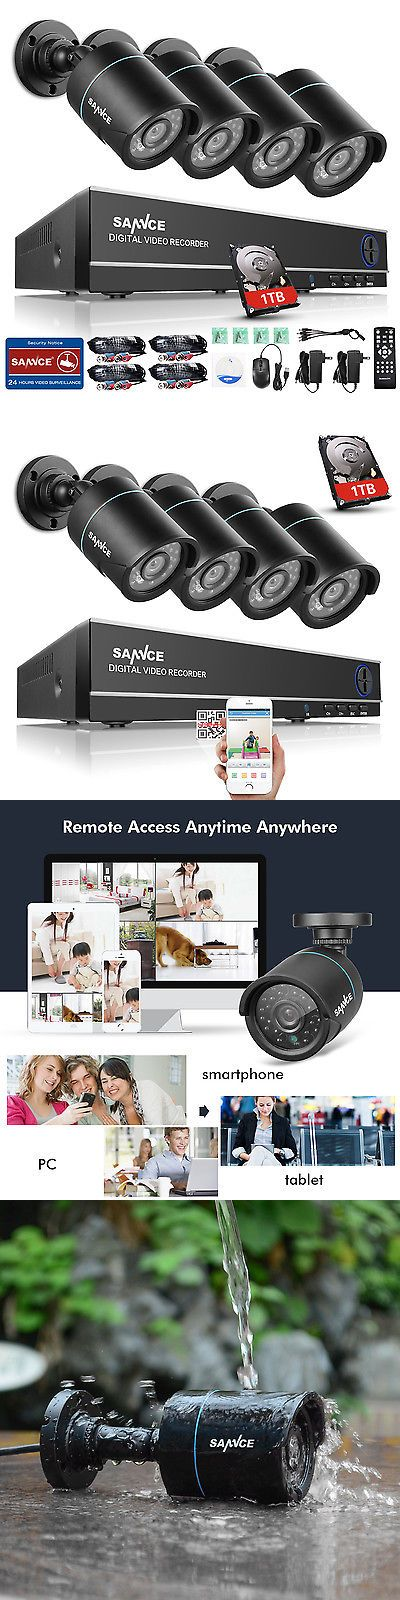 Surveillance Security Systems: Sannce 8Ch 1080N Hdmi Dvr 1500Tvl Outdoor Ir Cut Home Security Camera System 1Tb BUY IT NOW ONLY: $159.99